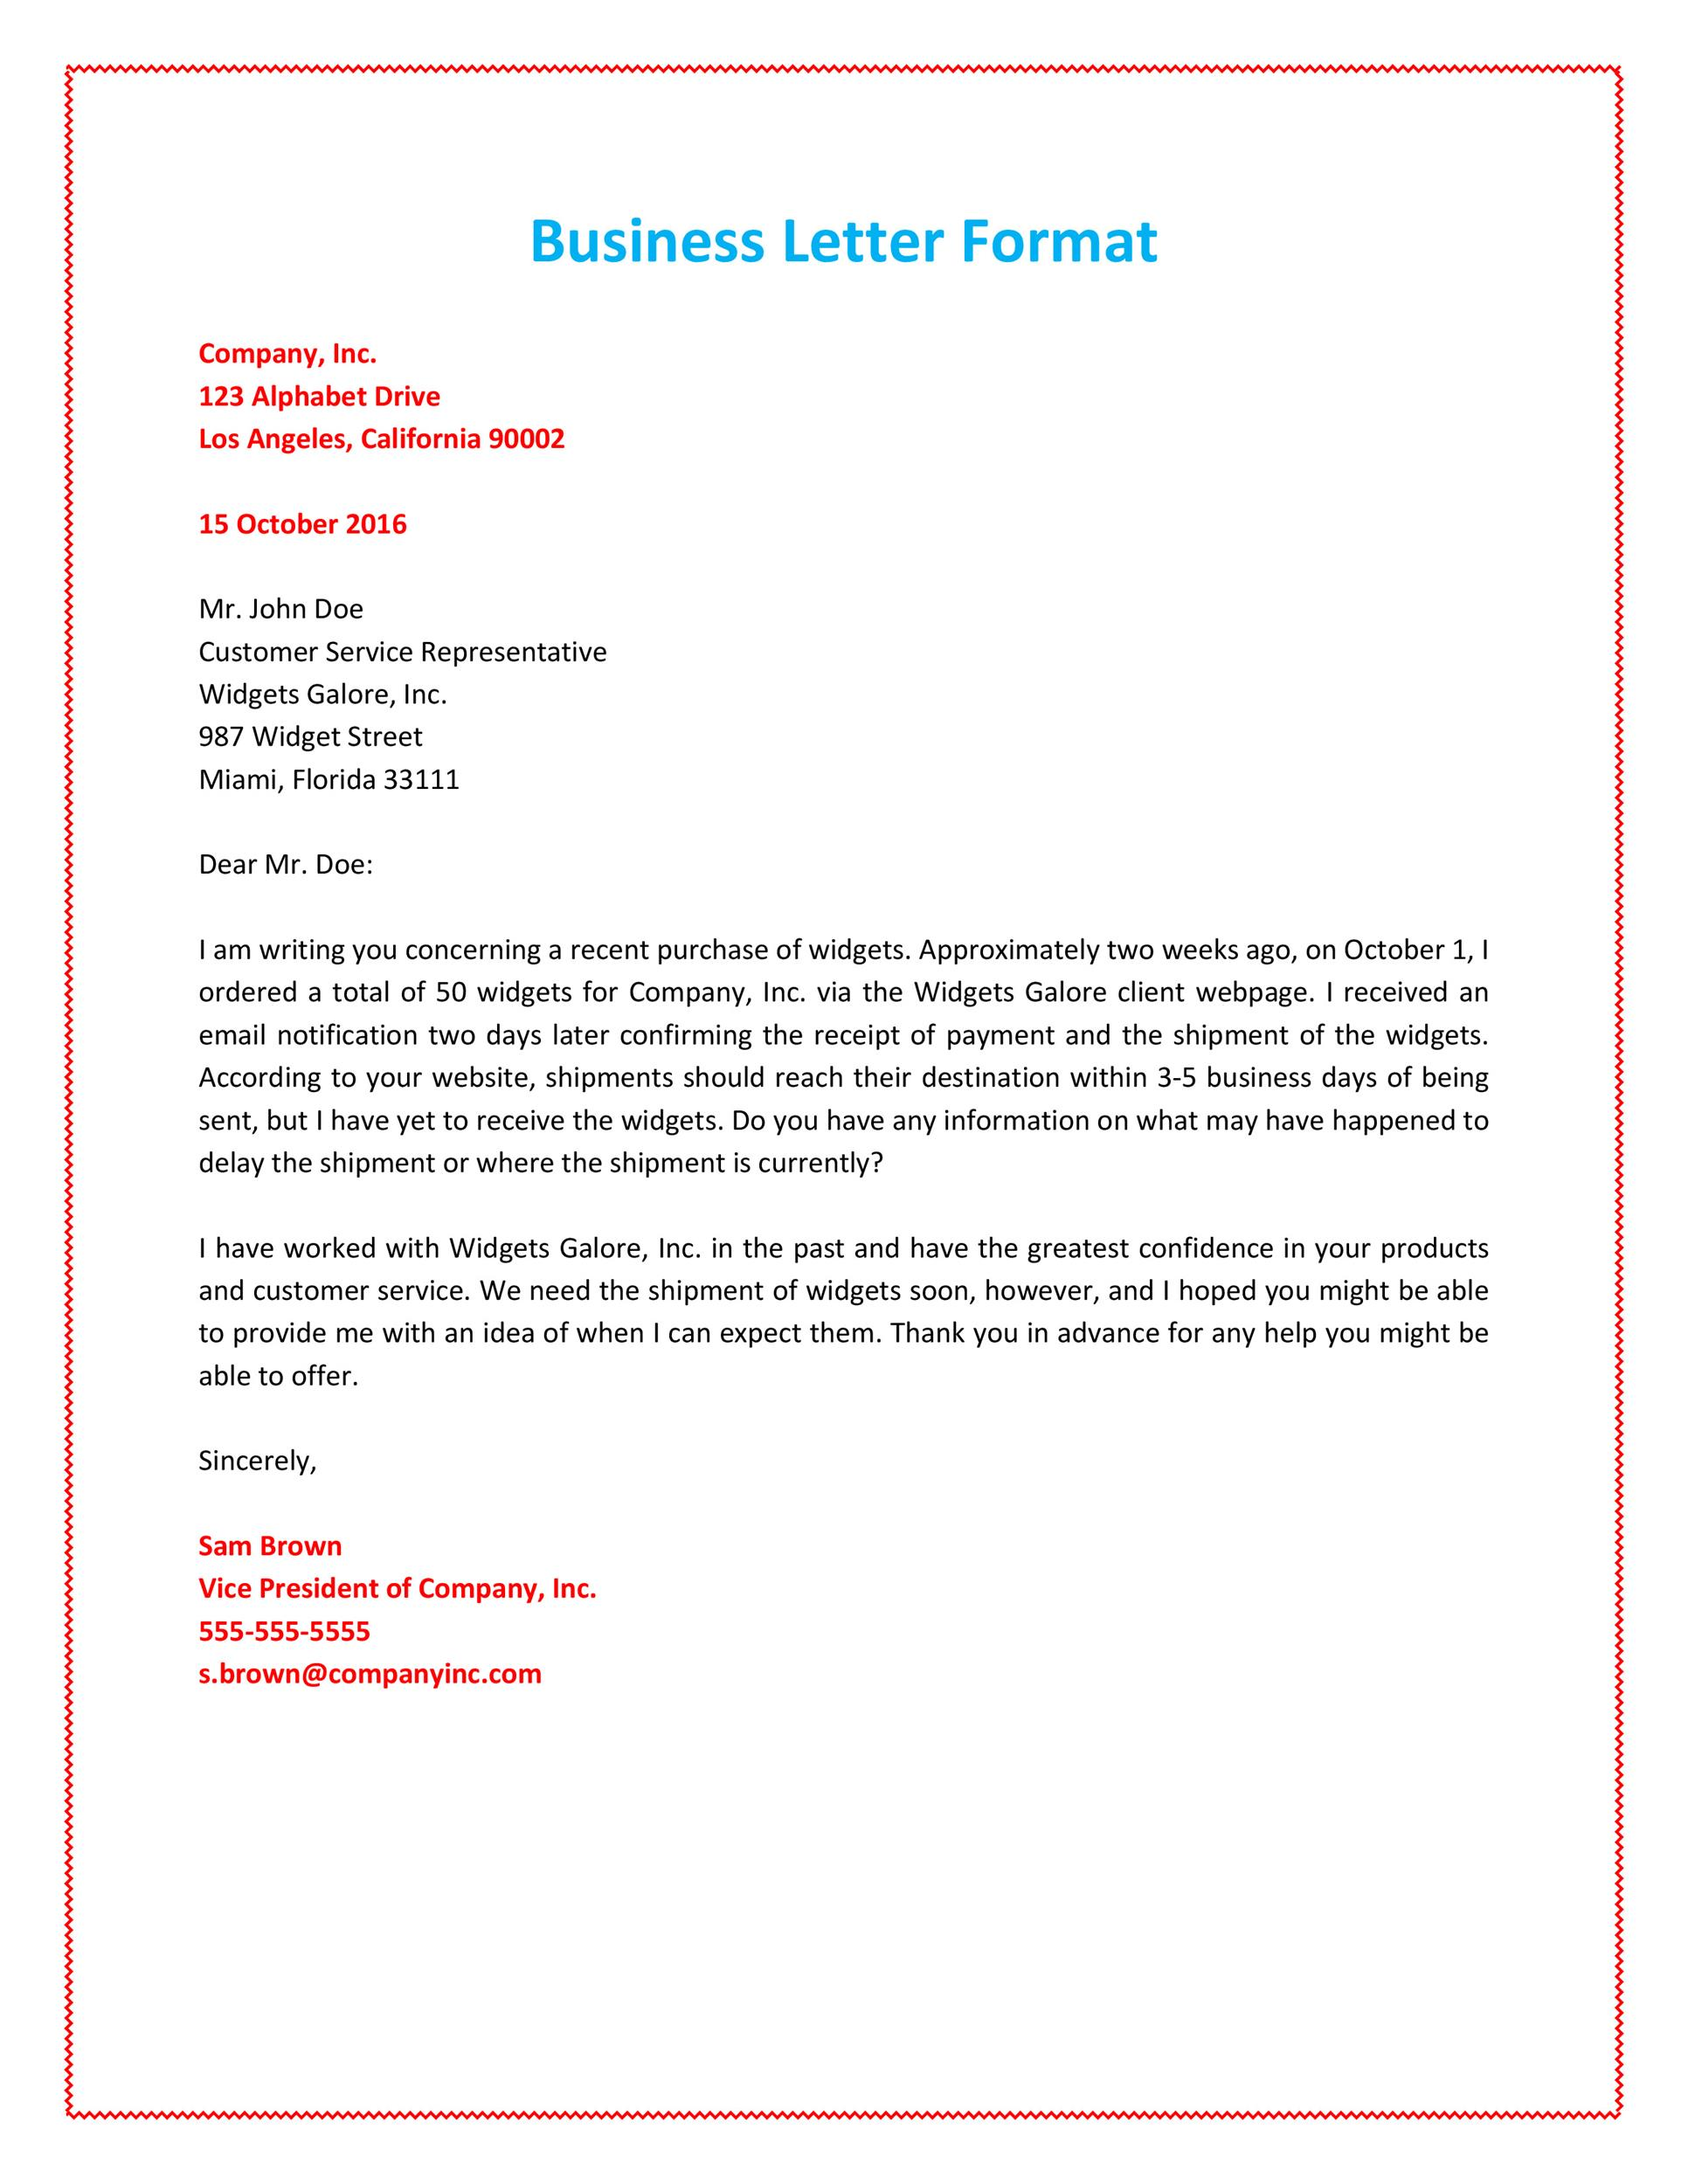 Cozy Business Letter Block Style Format Sample Business Letter